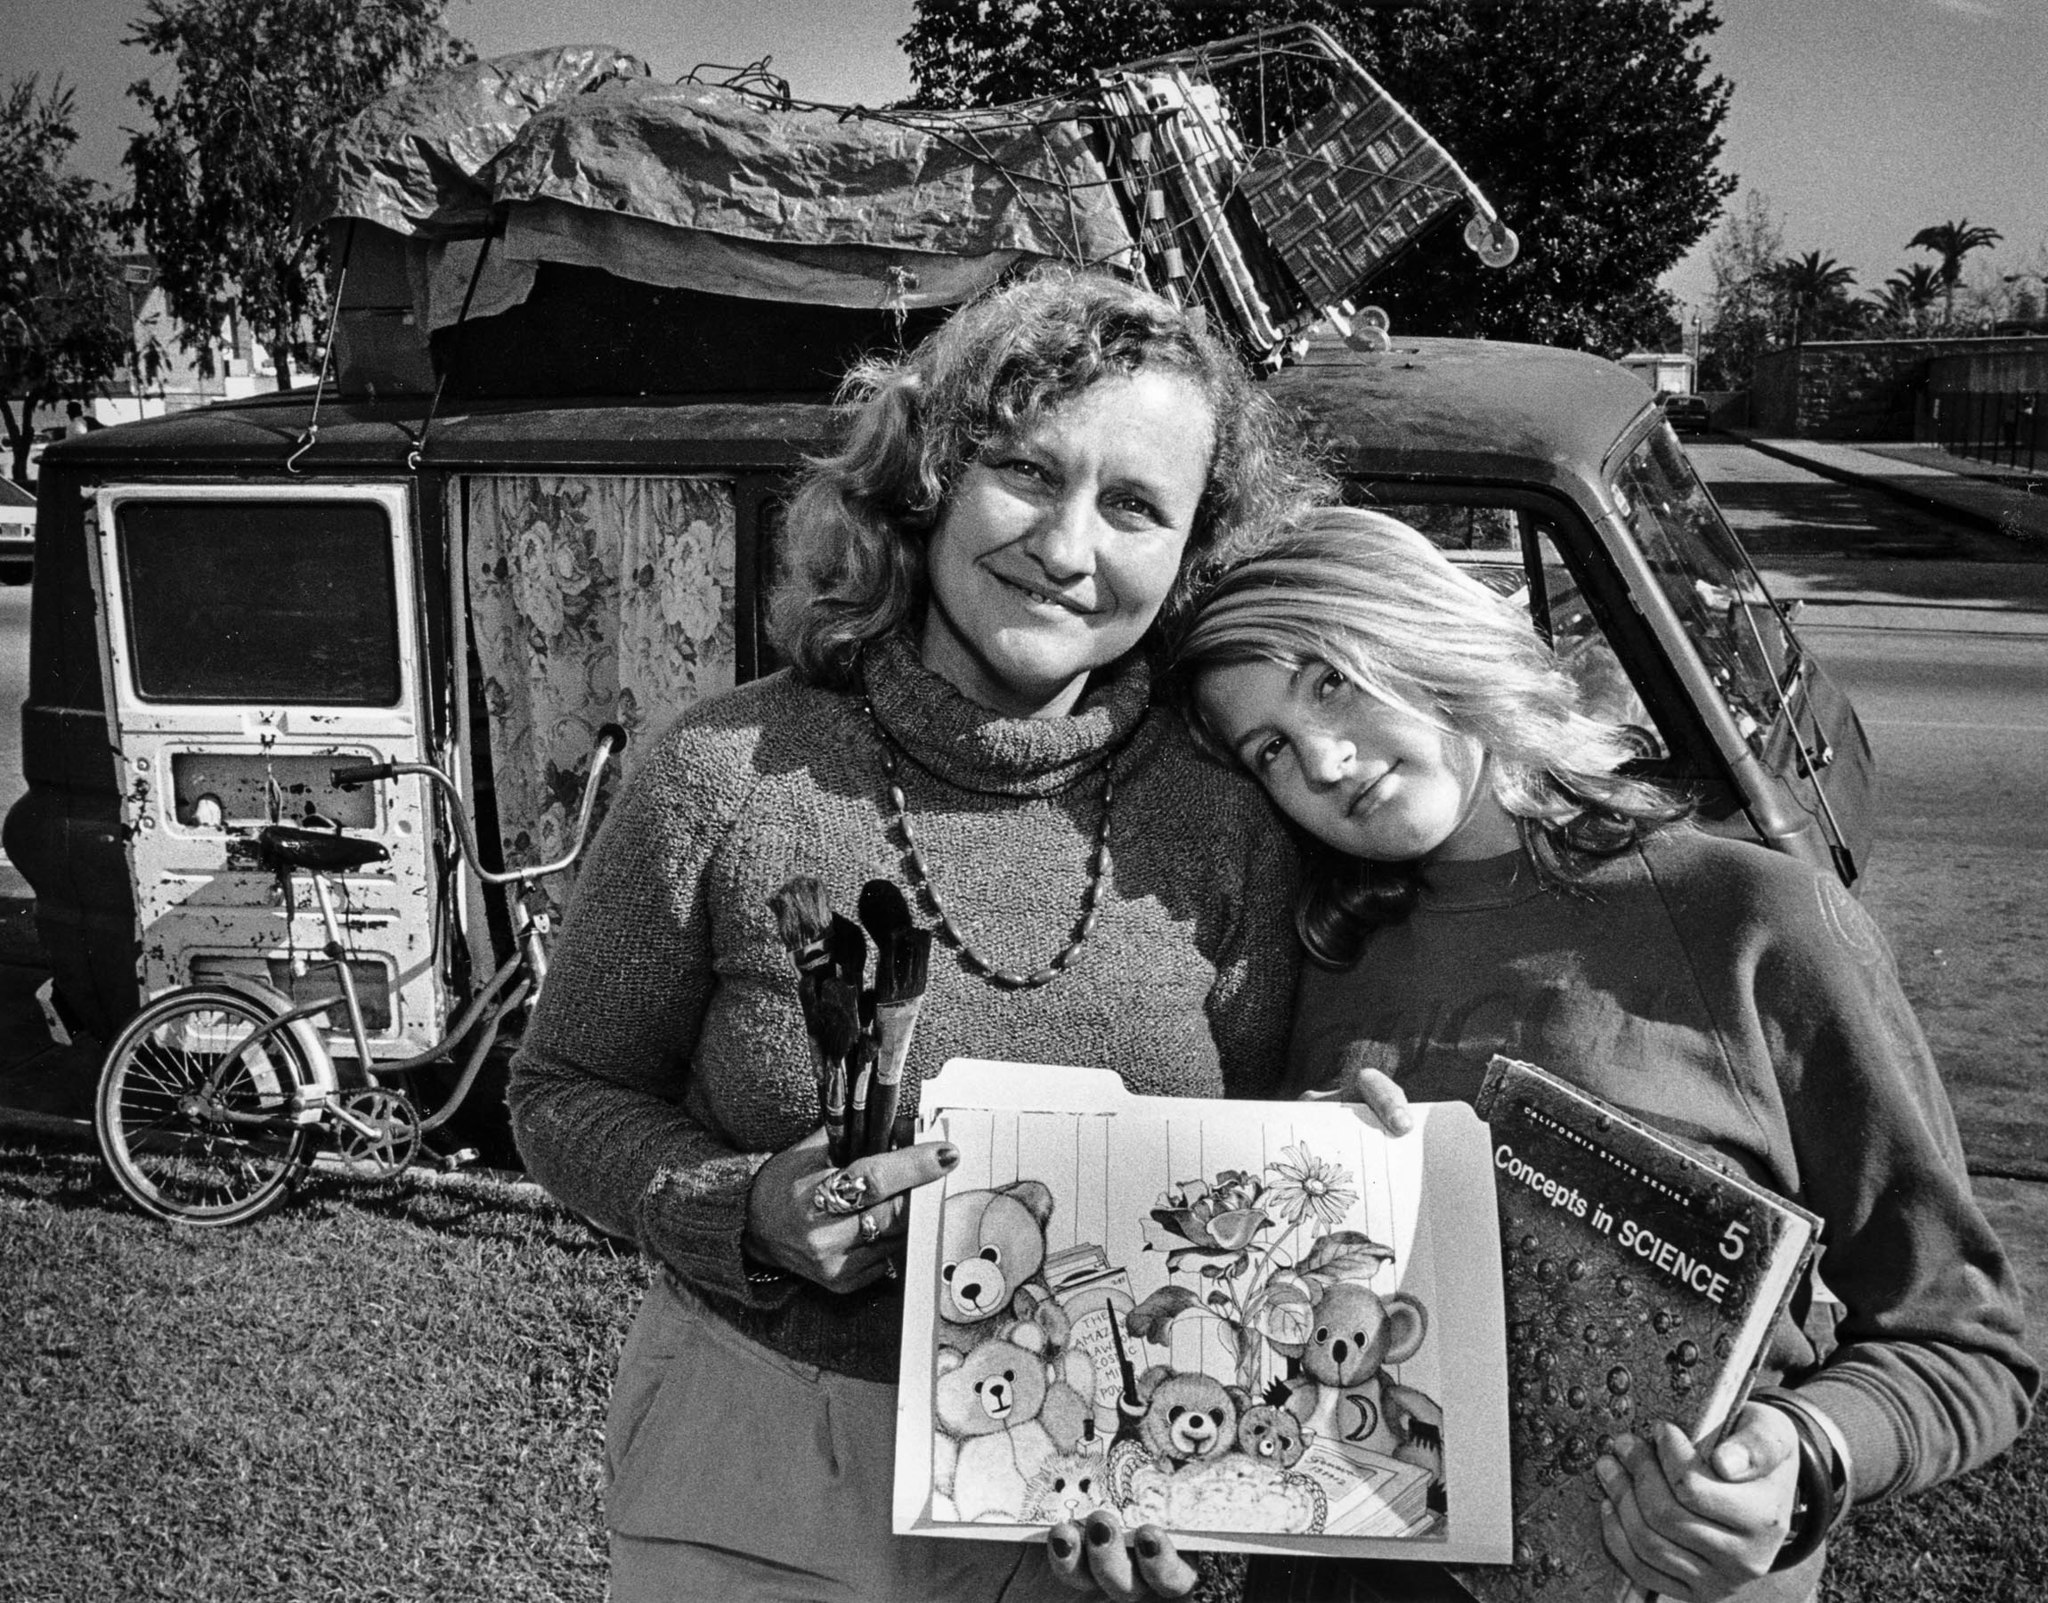 Jan. 12, 1987: Geneva Reese, 36, and daughter Eve, 13, live in a van. Geneva, an artist, holds her s